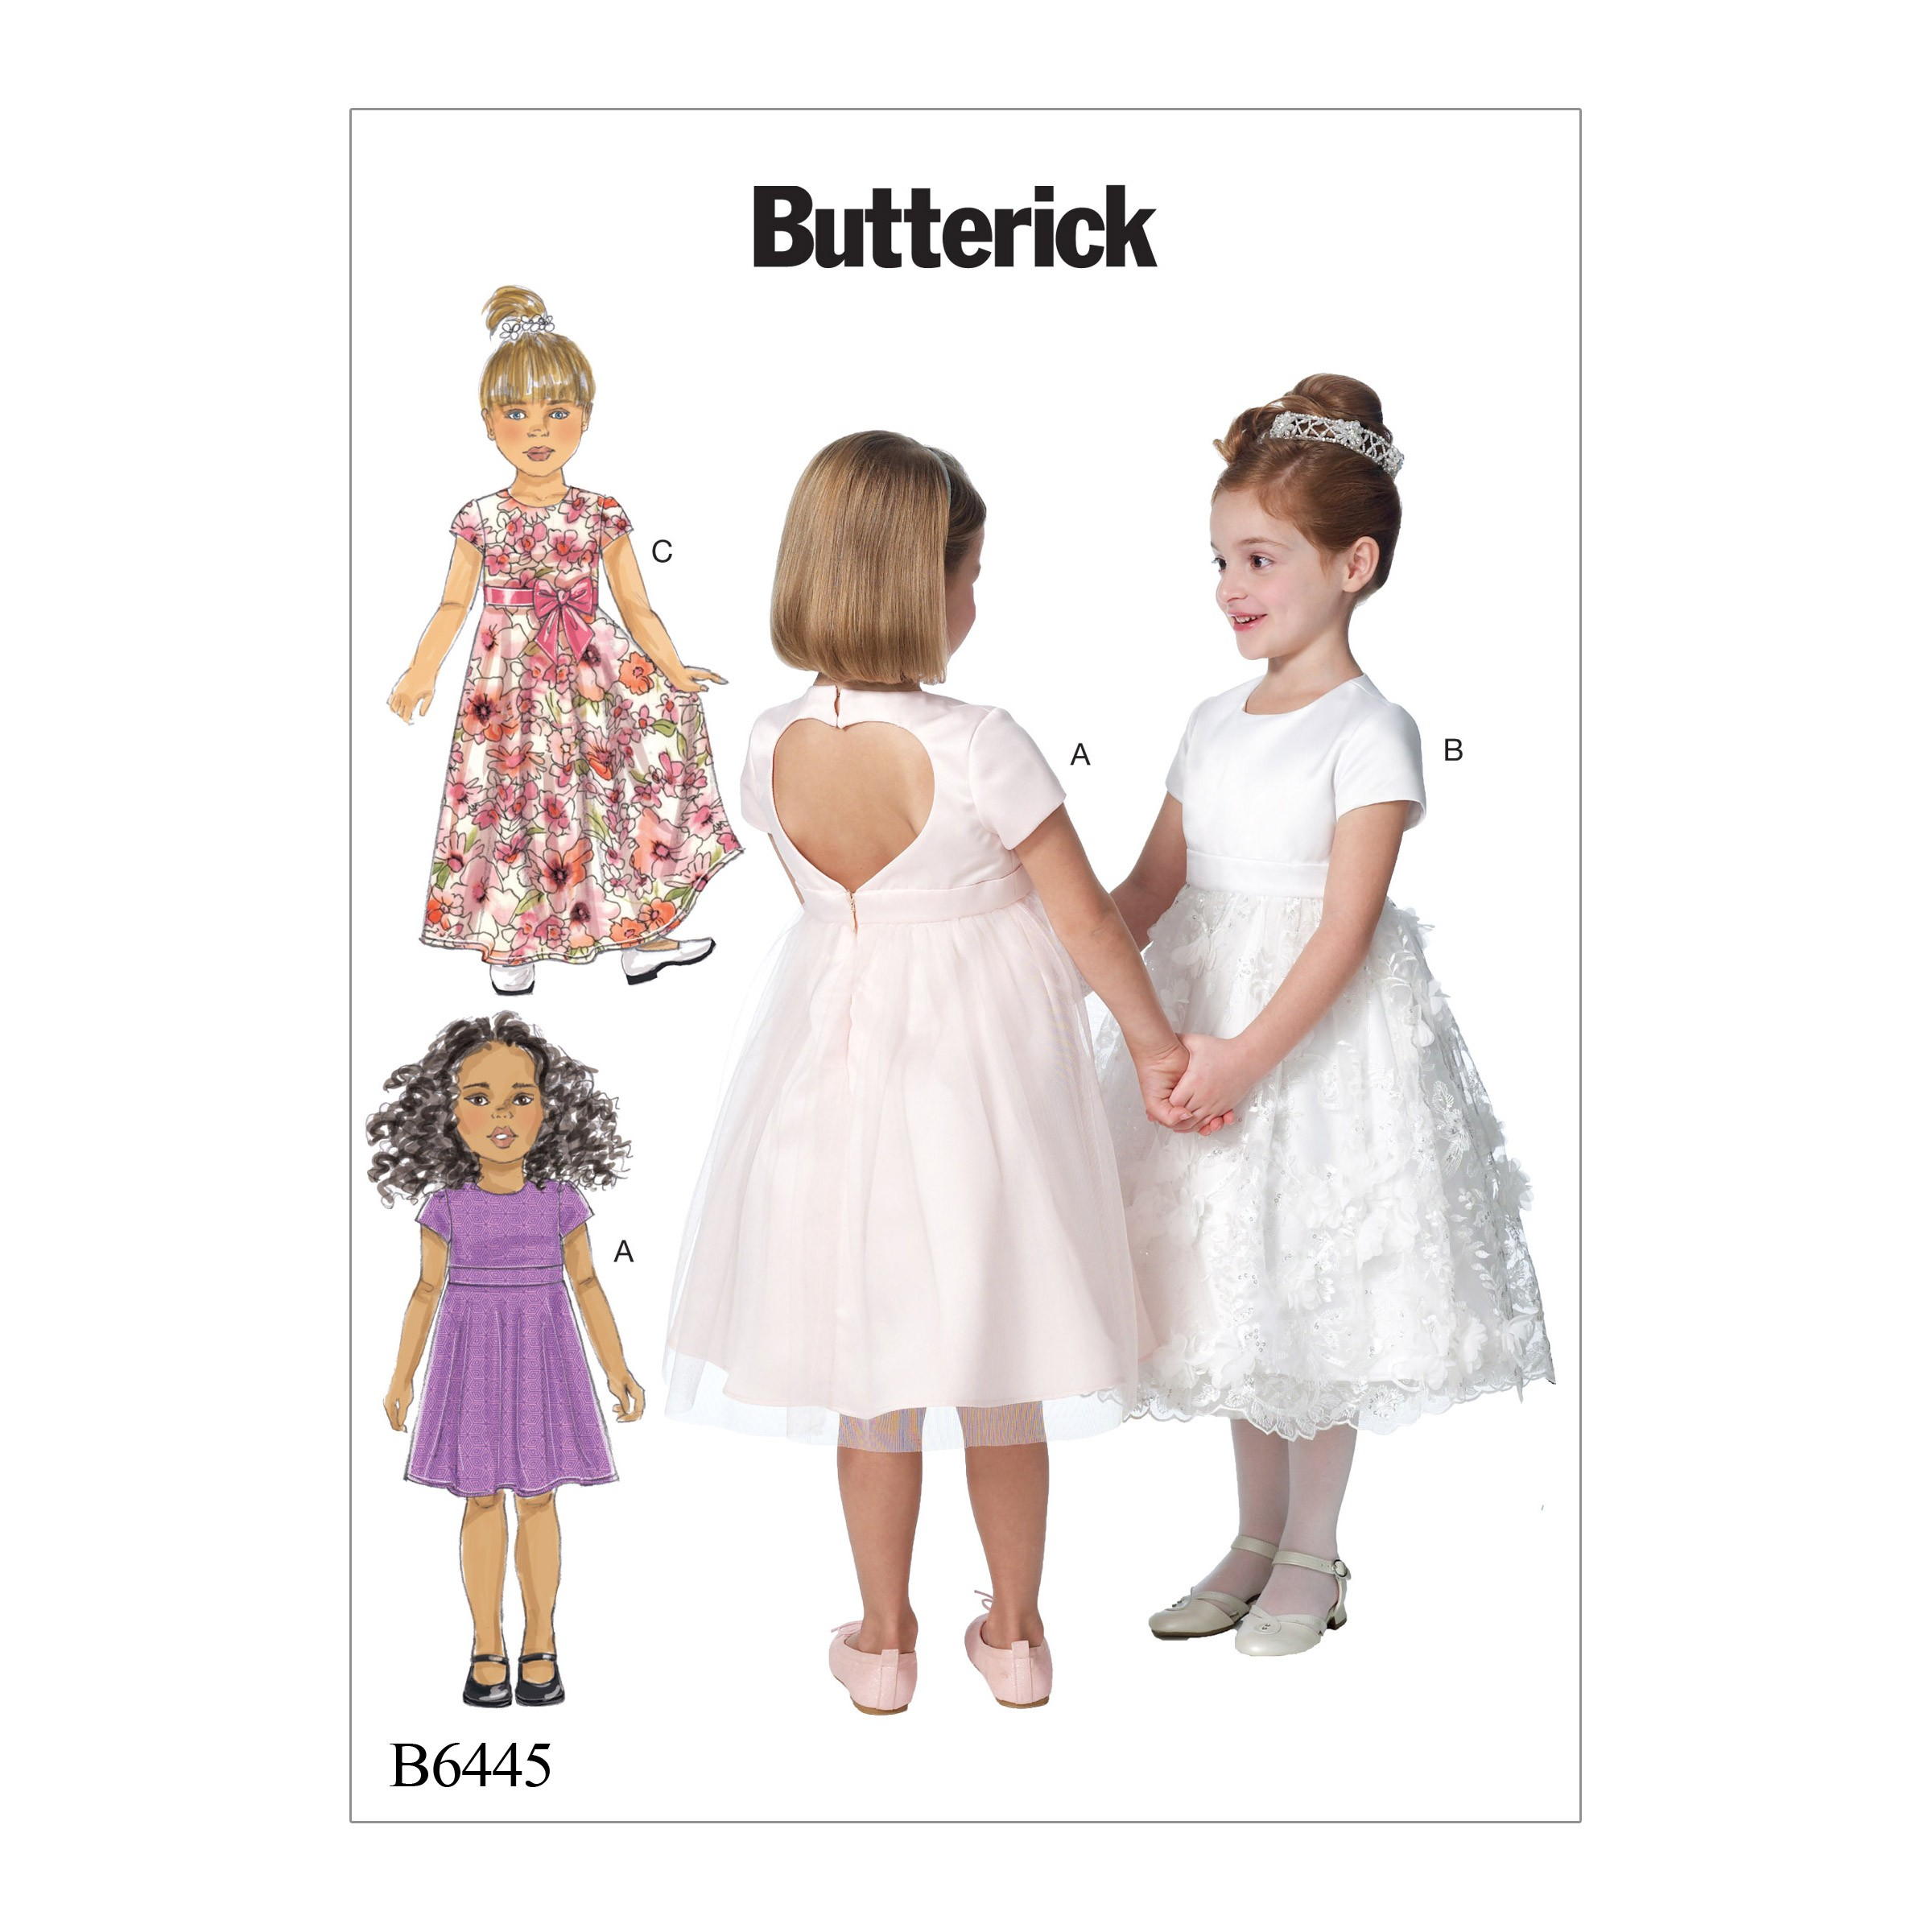 Butterick Sewing Pattern 6445 Children's Girls Dress with Optional Heart Cutout